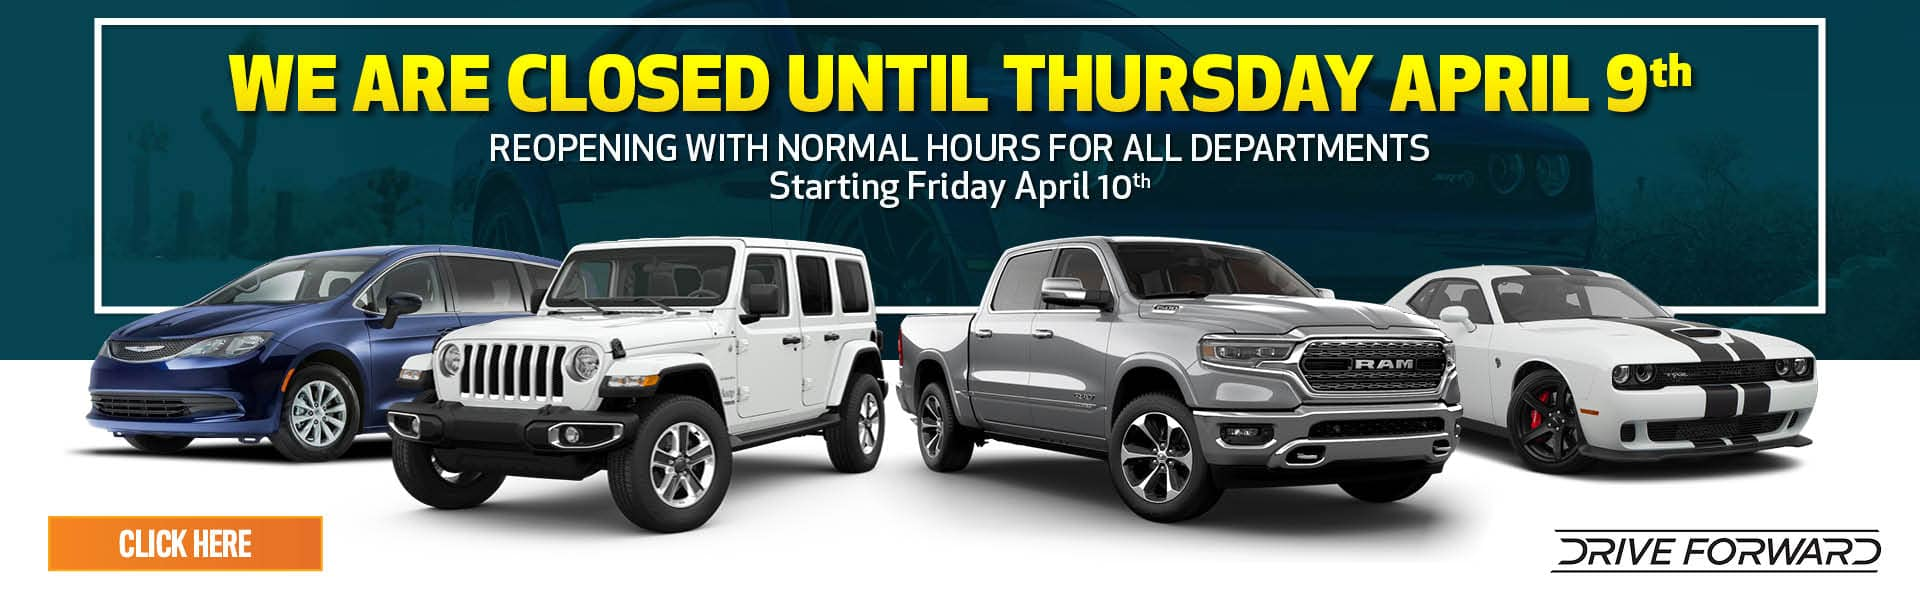 Thomson Chrysler Dodge Jeep RAM is Closed until April 9th